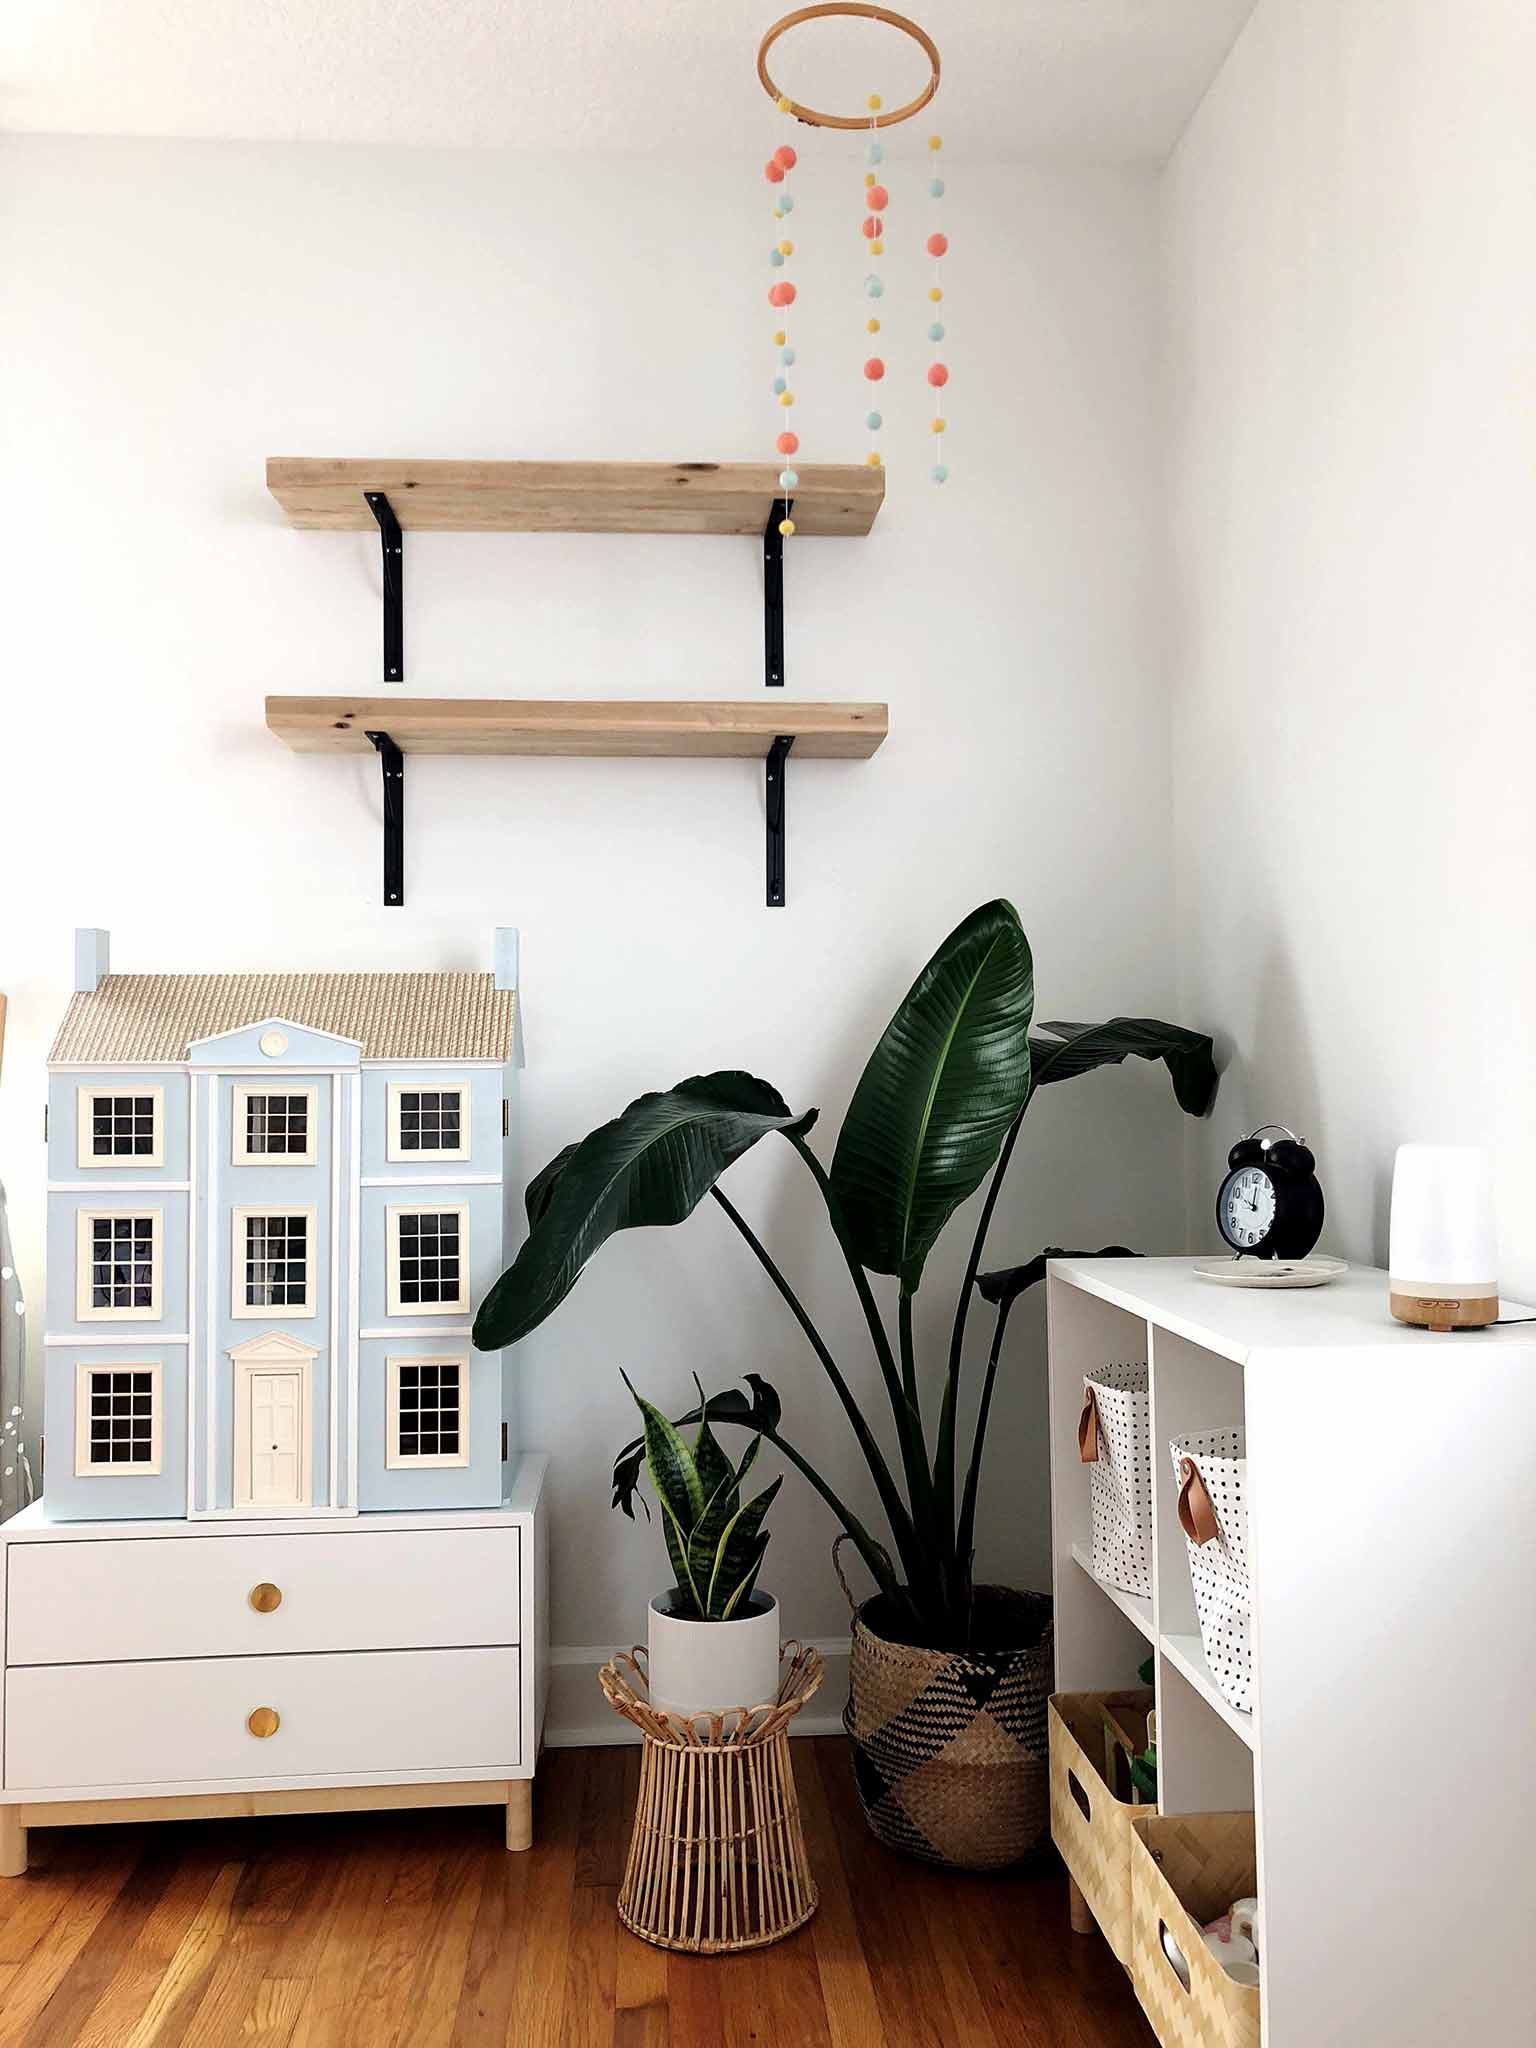 Corner of girls bedroom with wall shelves, plants, doll house and IKEA EKET storage - Guest Participant of the One Room Challenge - That Homebird Life Blog